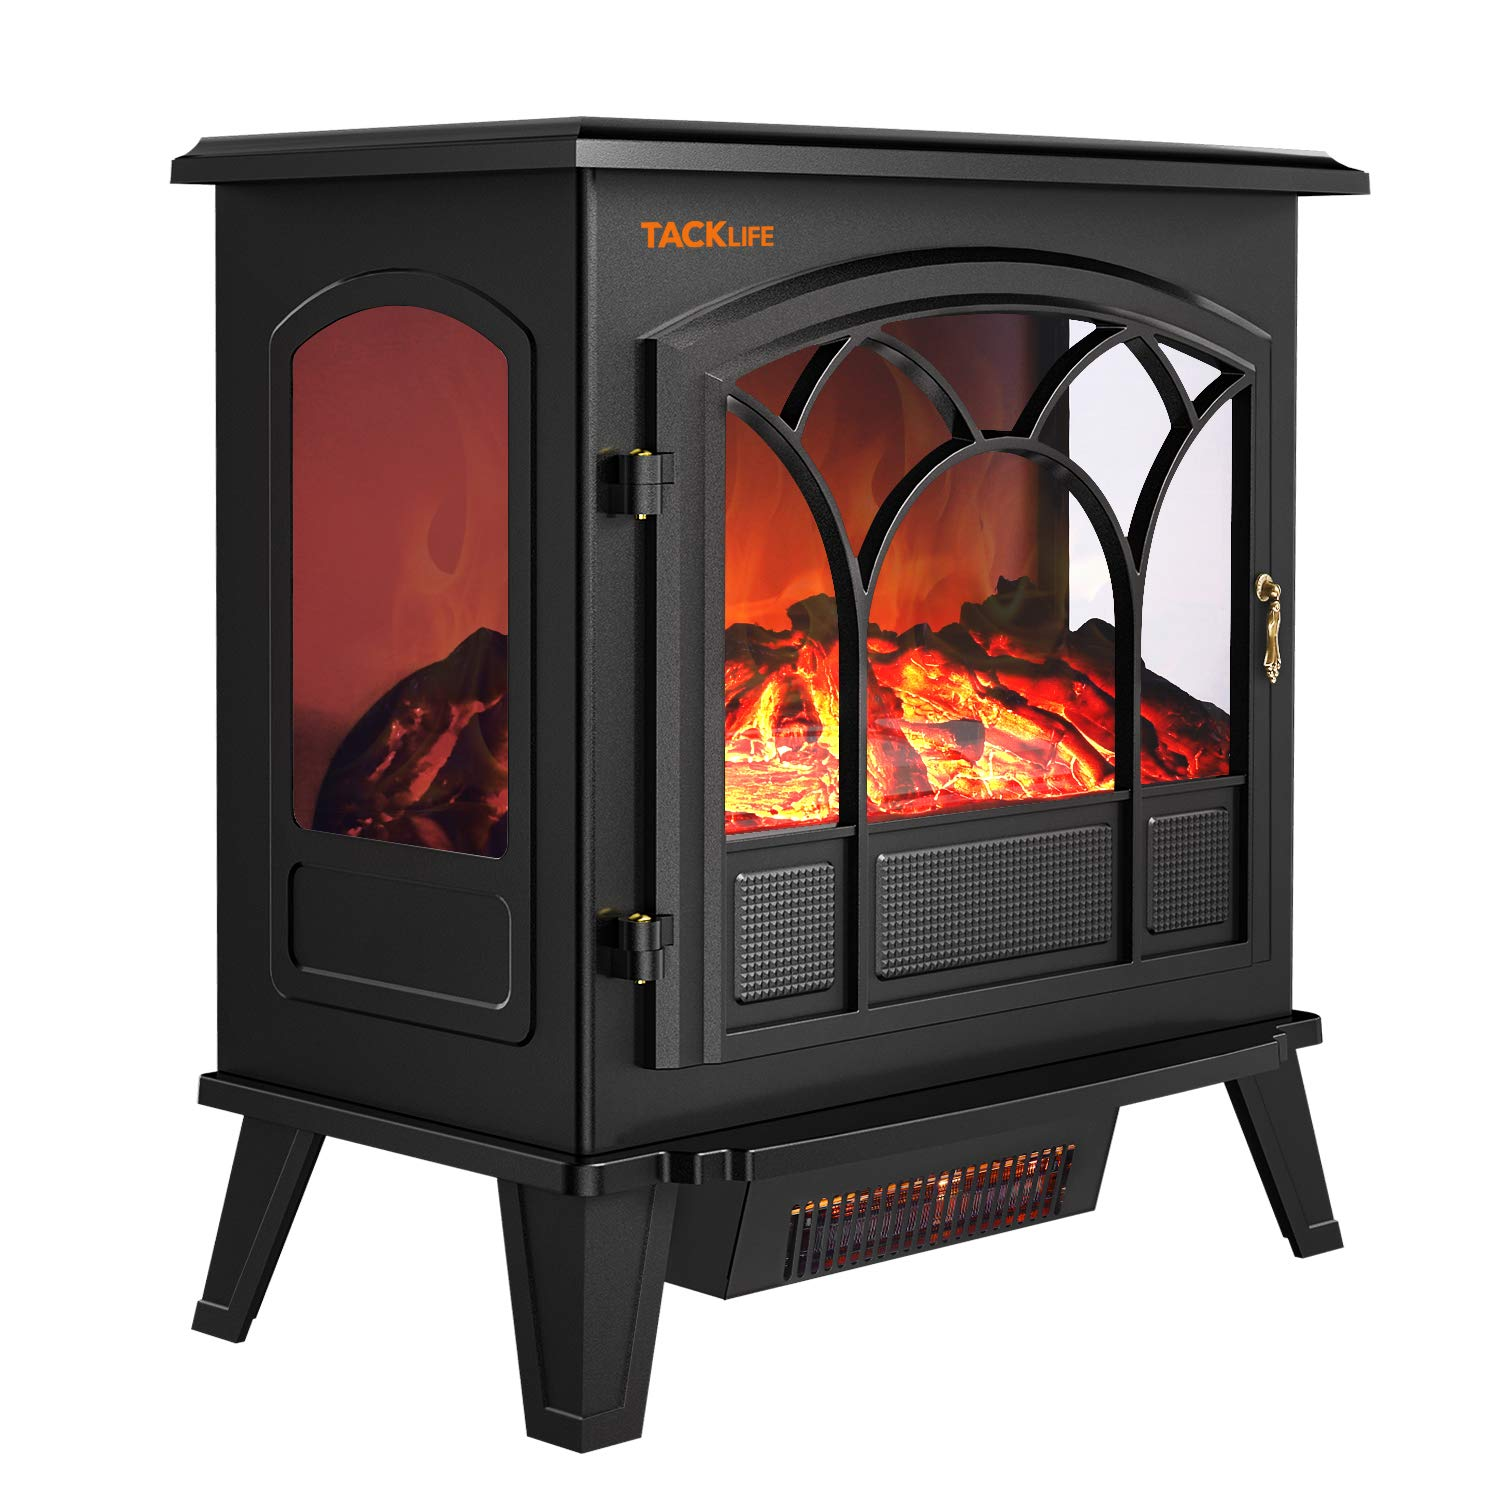 TACKLIFE Electric Fireplace, 750 W 1500W Electric Fireplace Stove, 2600 BTU 5200 BTU, L25 W14 H 26.3 , CSA Certified, Portable Indoor Space Heater with 3D Flame Effect ZXH11